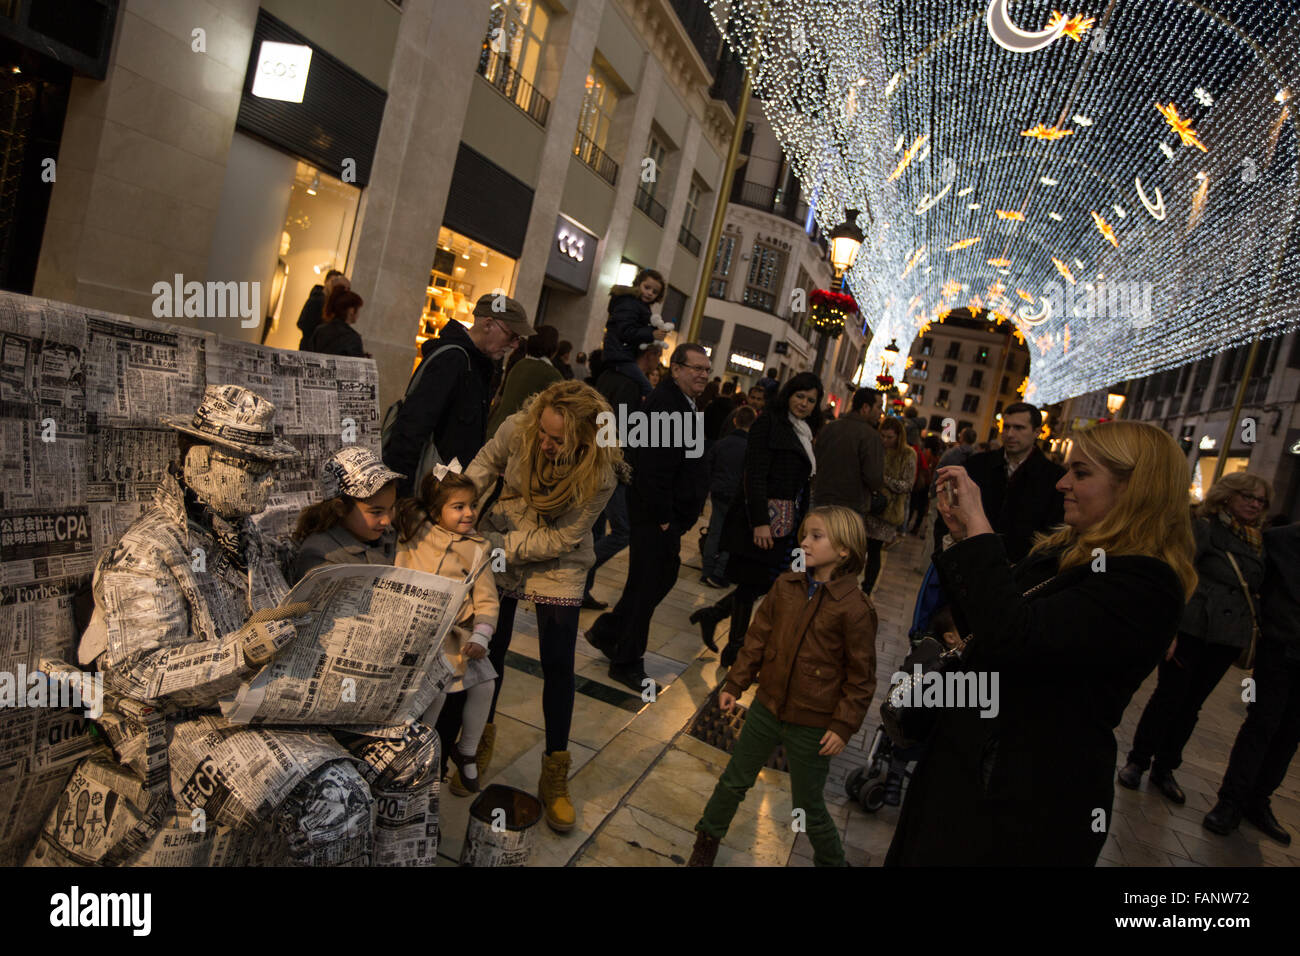 Christmas lights on the Calle Marques de Larios, near the Plaza de la Constitucion, in Malaga, Spain - Stock Image